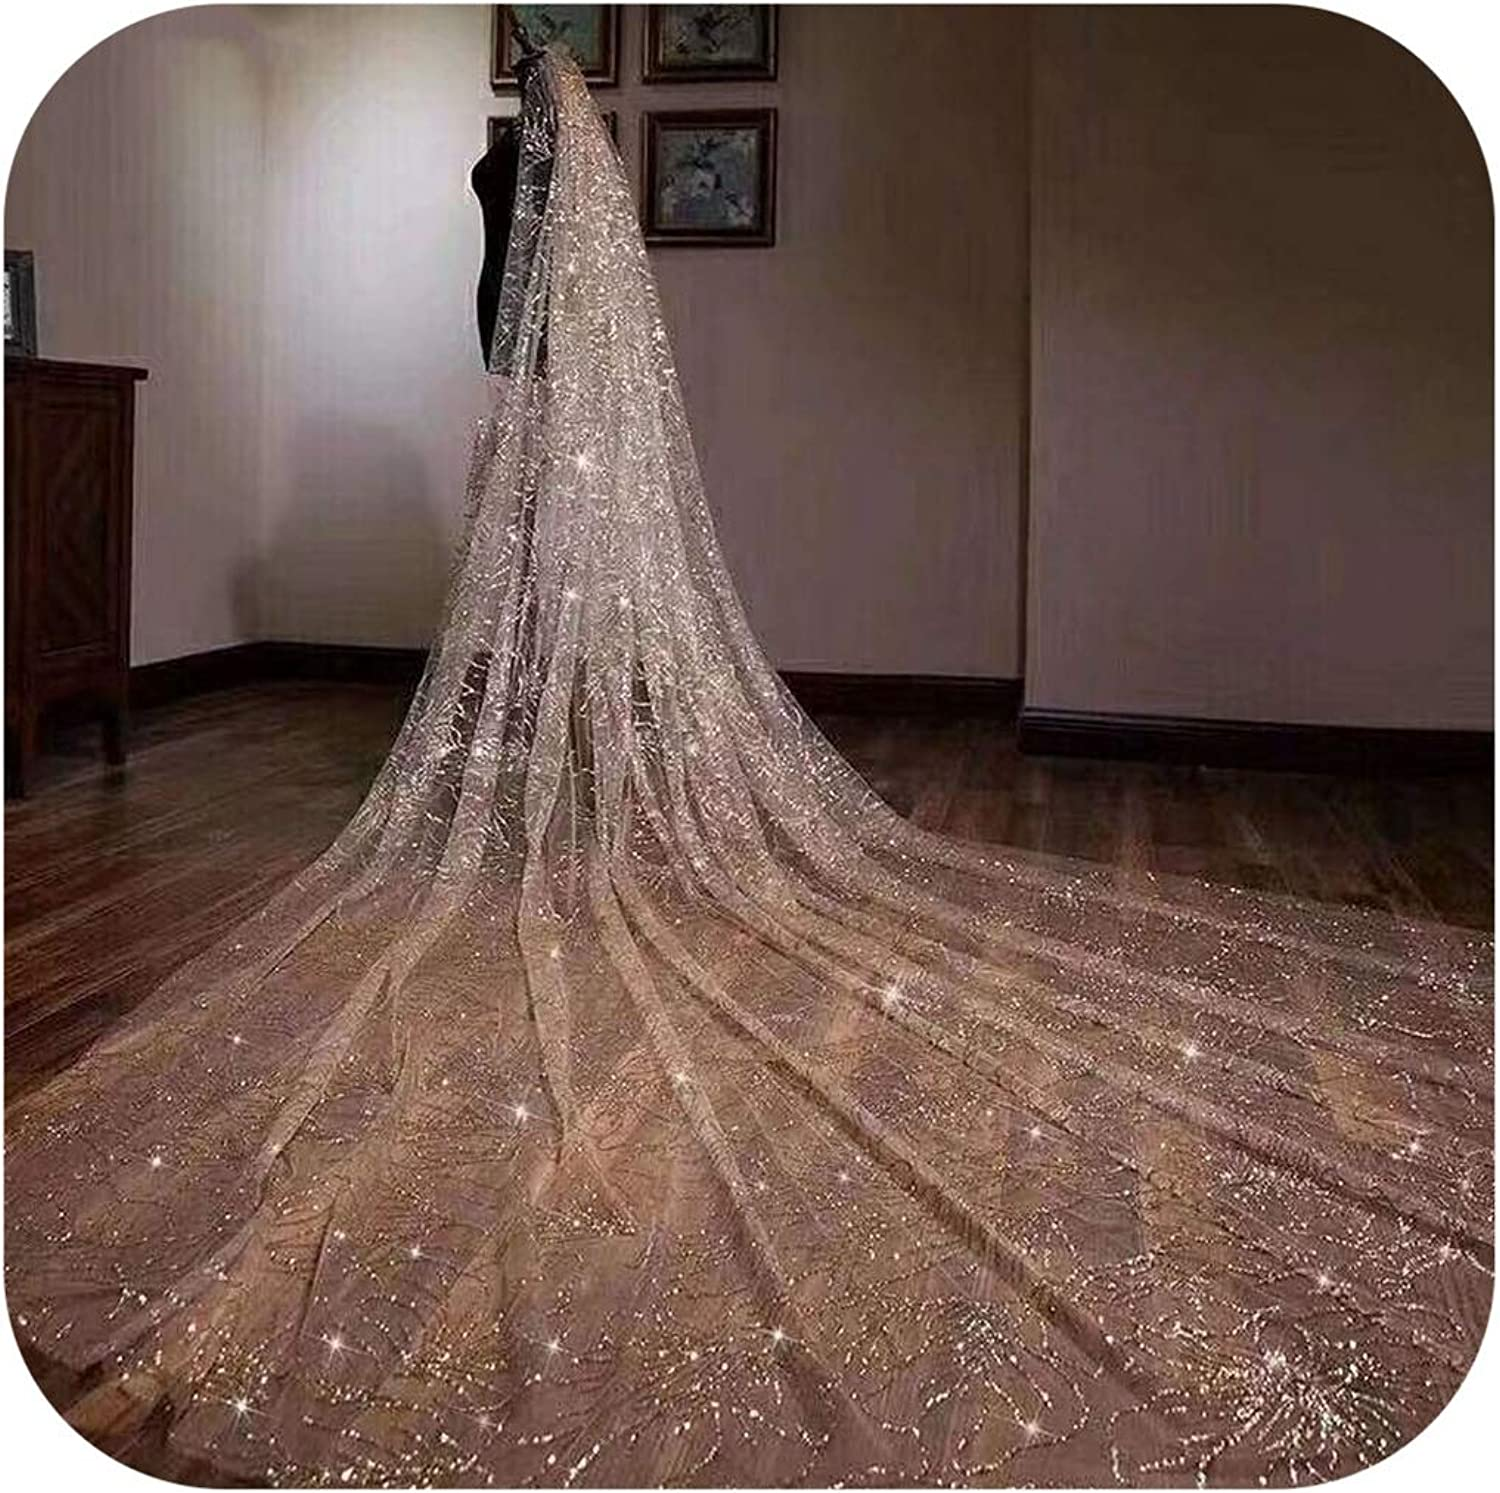 Nice warm Luxury Sequins New Mantilla Wedding Marry Headdress Accessories Long Cathedral Bridal Wedding Veil With Comb,Champagne,350Cm